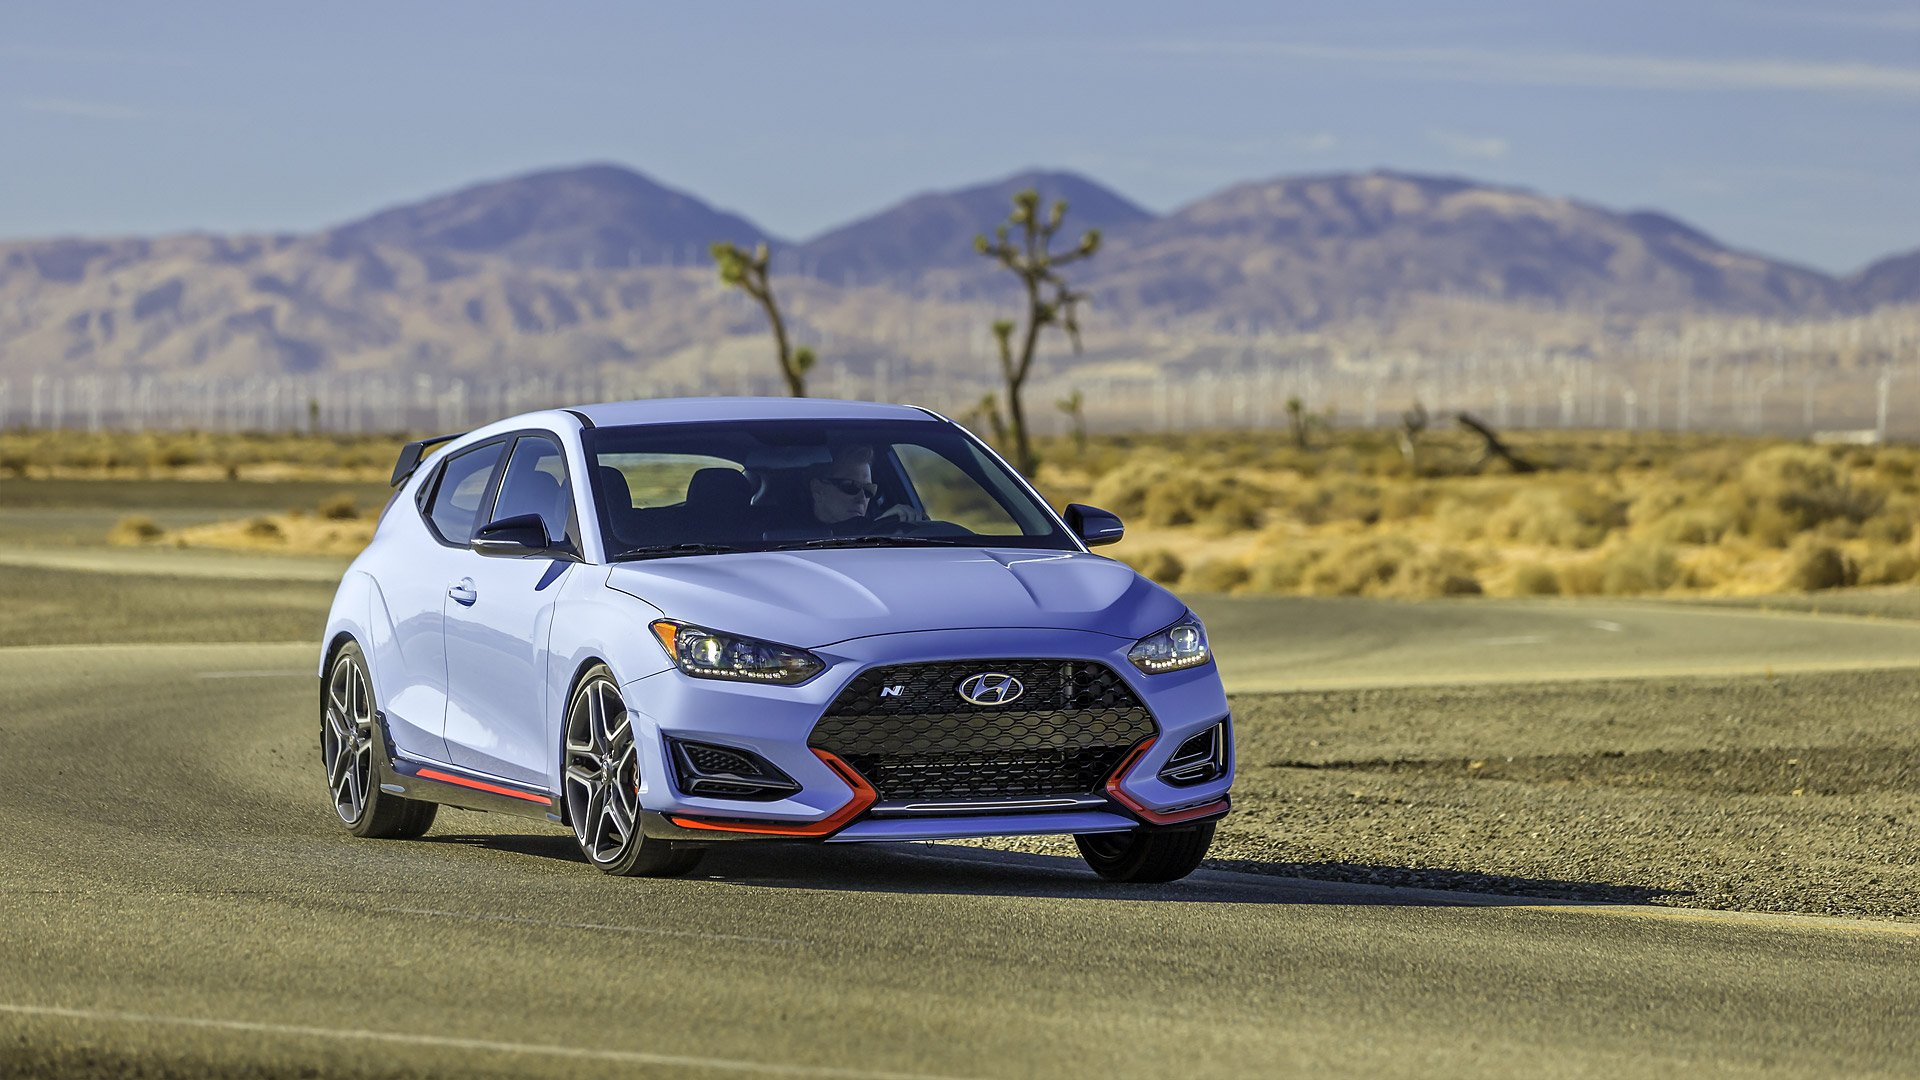 2019 Hyundai Veloster N Wallpapers HD Images   WSupercars 1920x1080